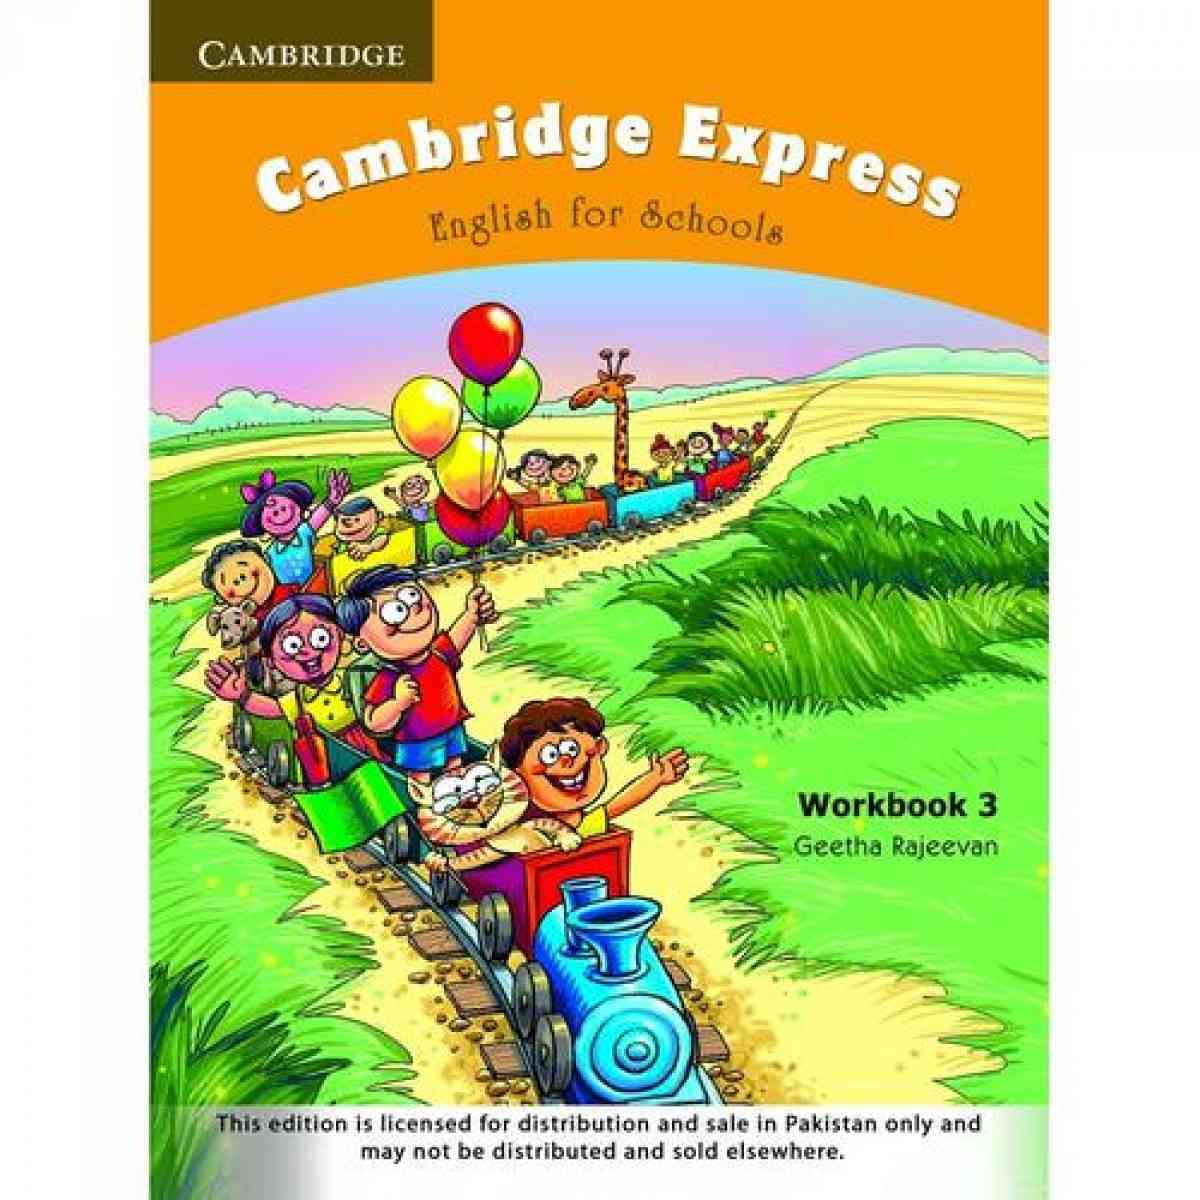 Cambridge Express: English For Schools Workbook 3